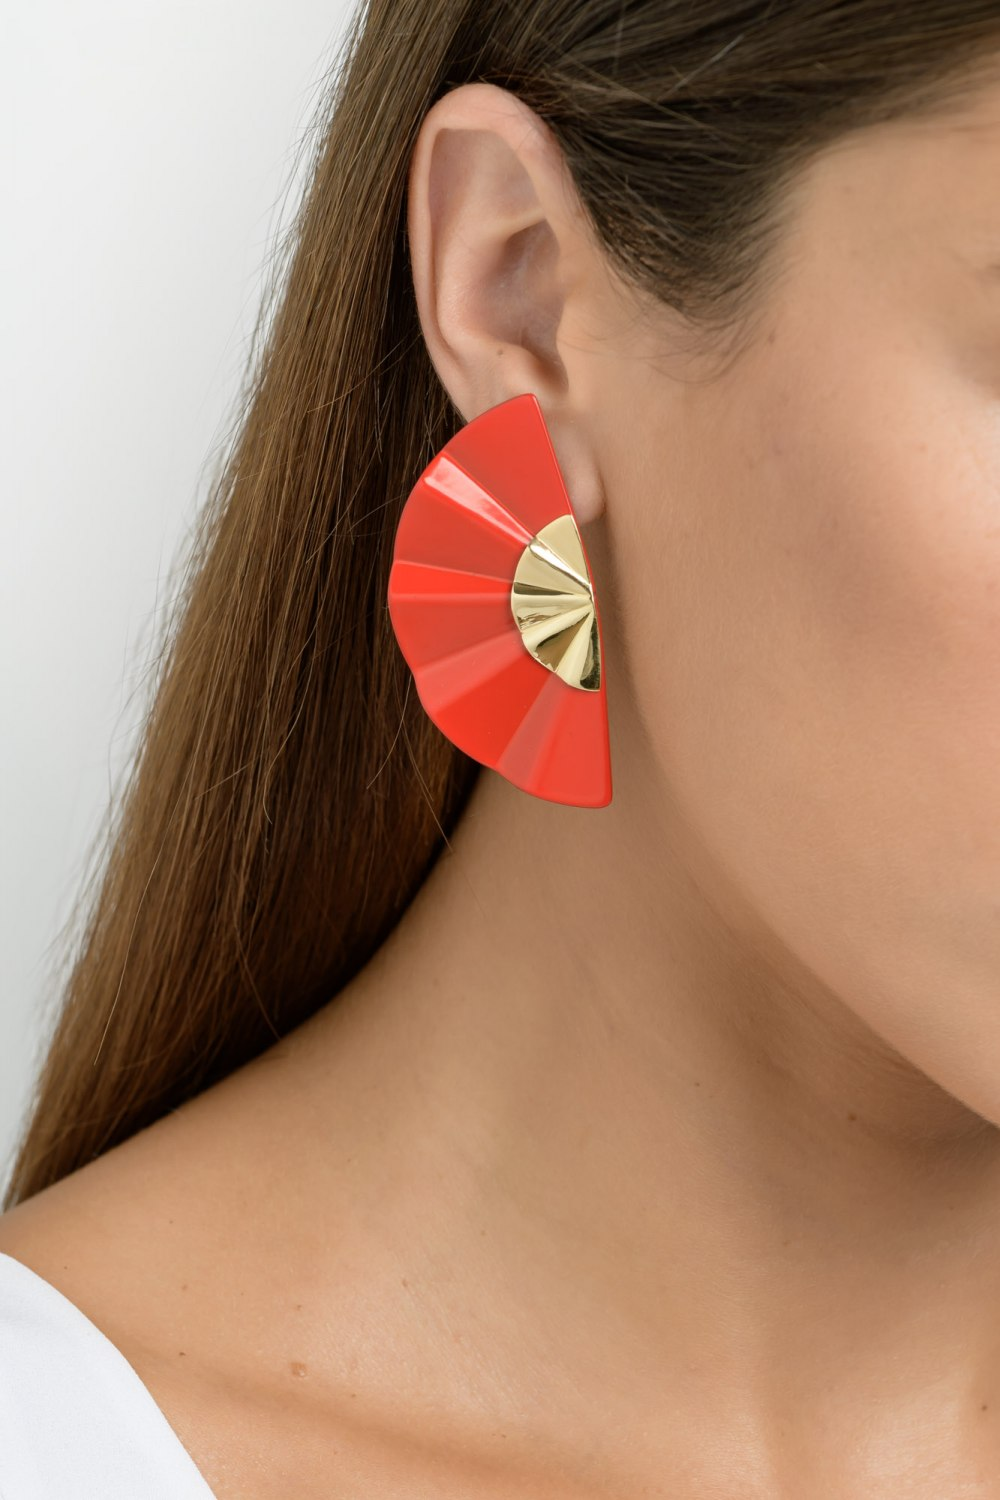 Kessaris-Golden Geisha Red Titanium Earrings